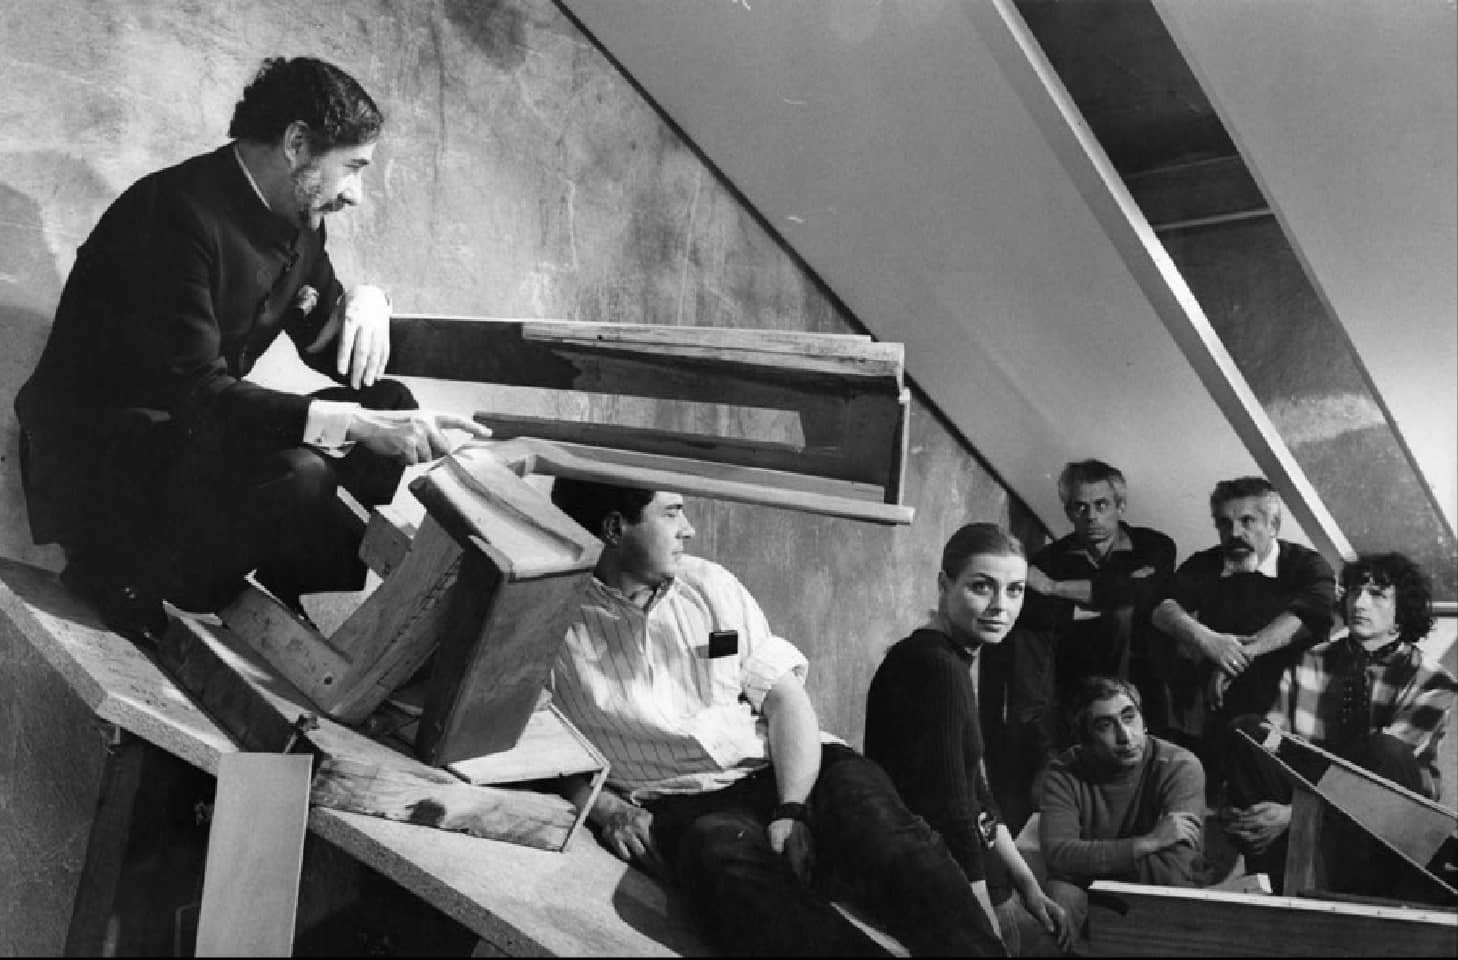 Disparition de claude parent cr ateur de l architecture oblique archicree - Claude parent architecte ...